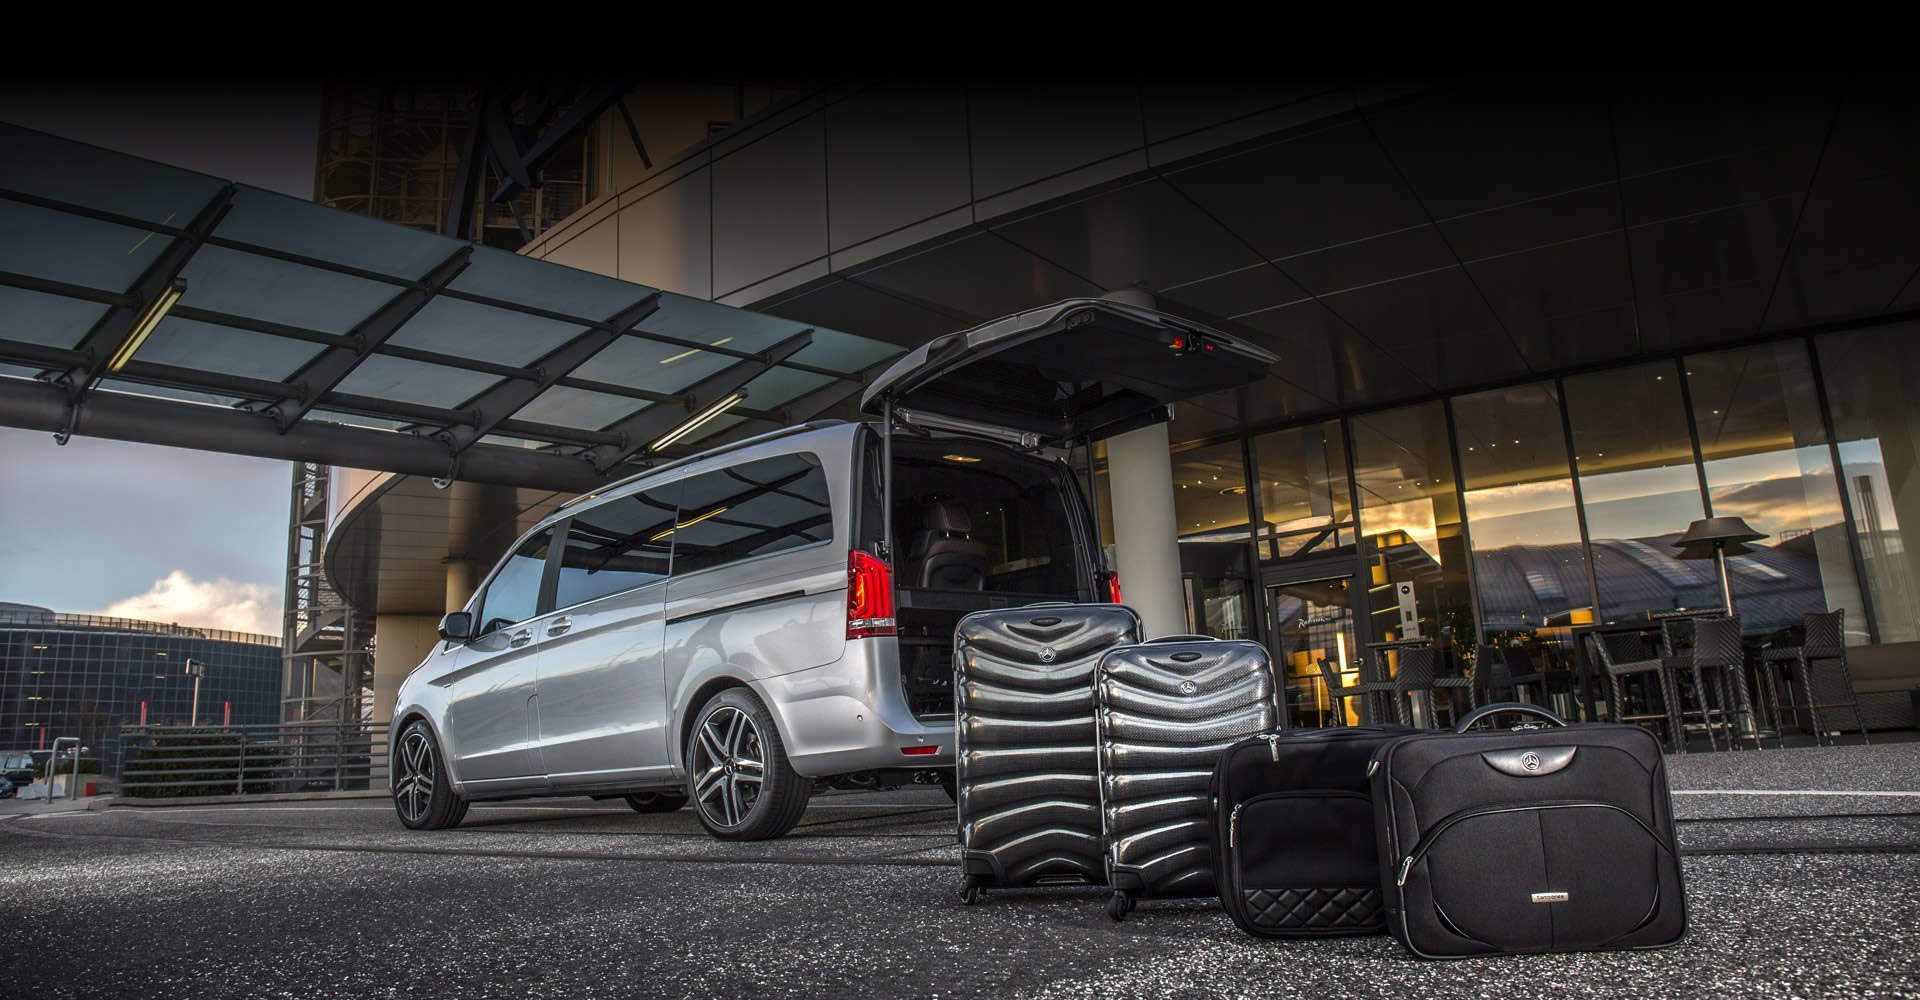 Airport Transfers From Brisbane Hotel To Brisbane Airport